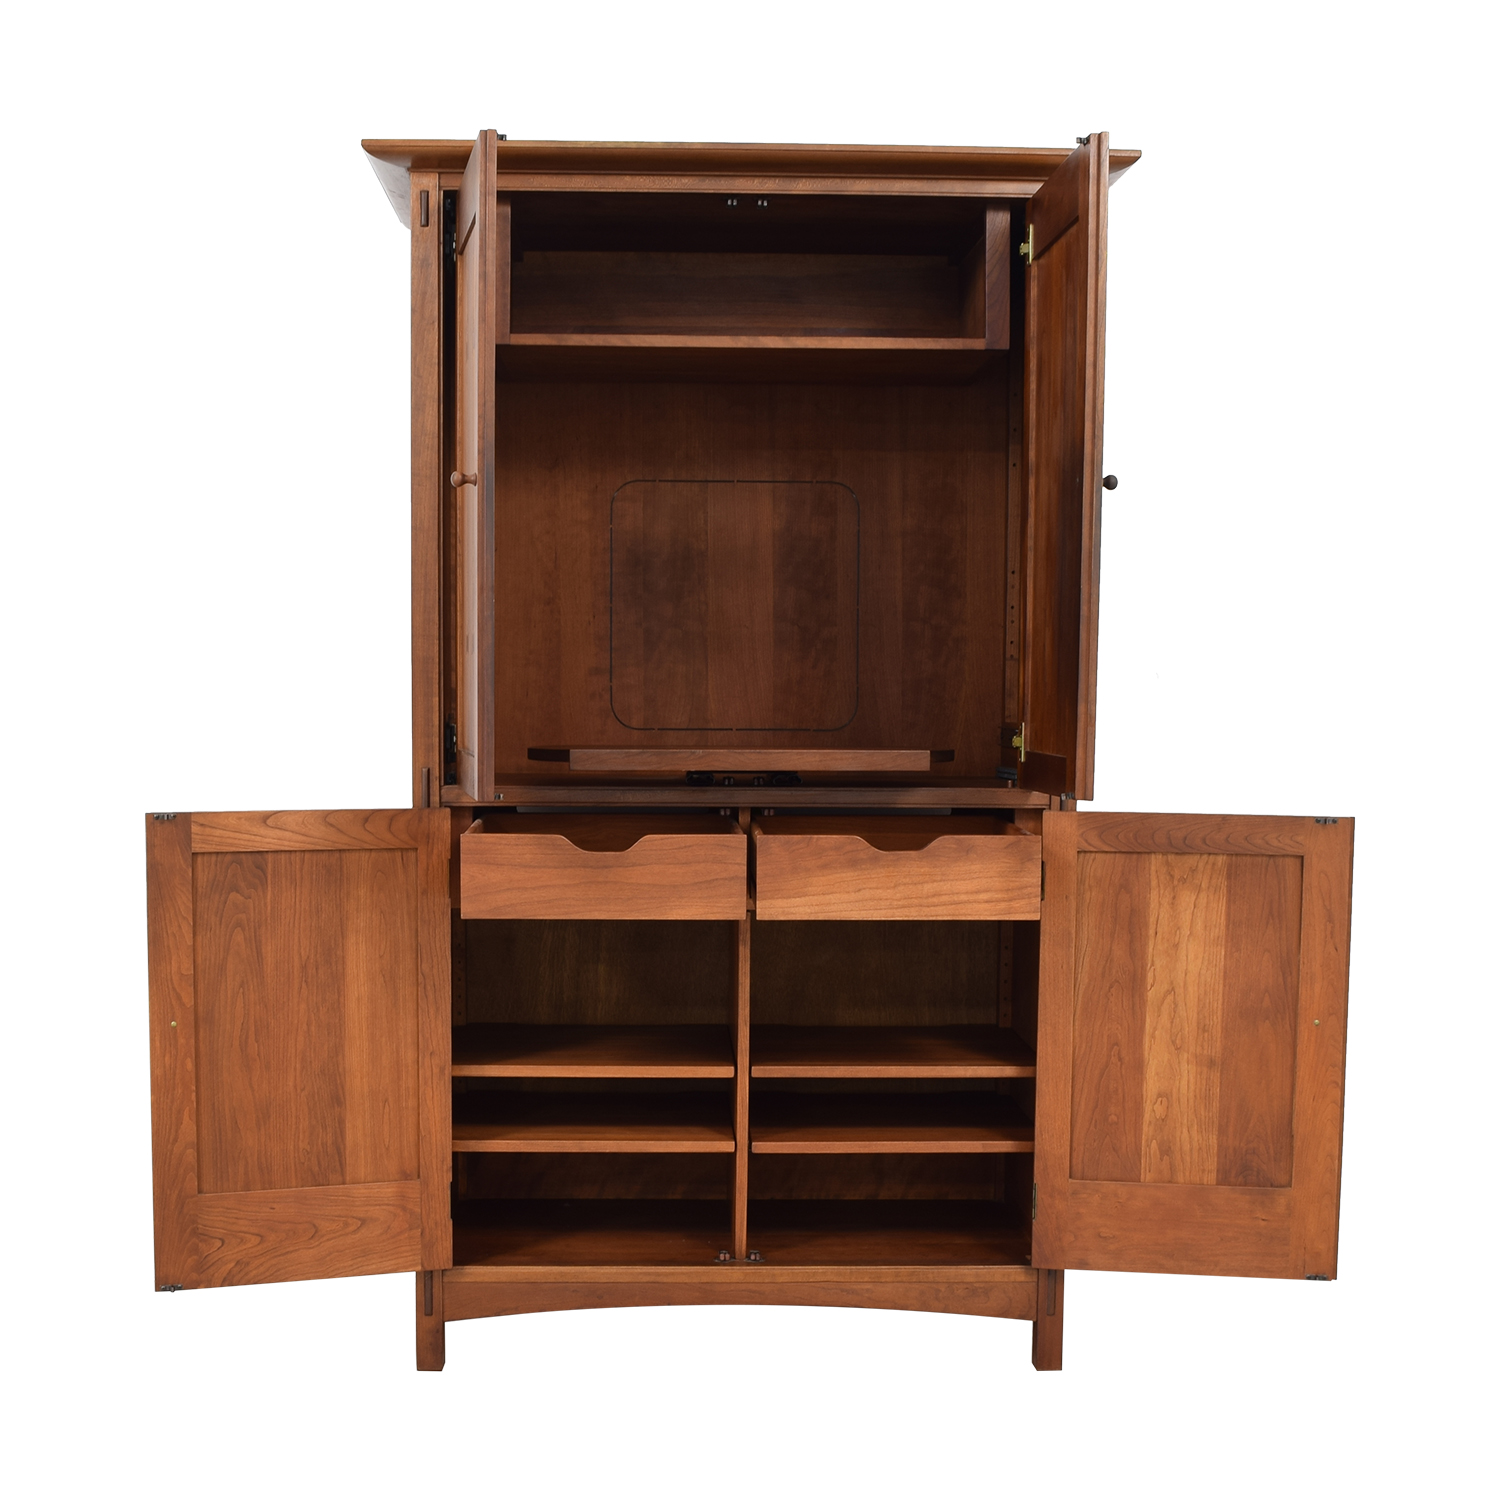 Stickley Furniture Stickley Furniture Mission Armoire Brown